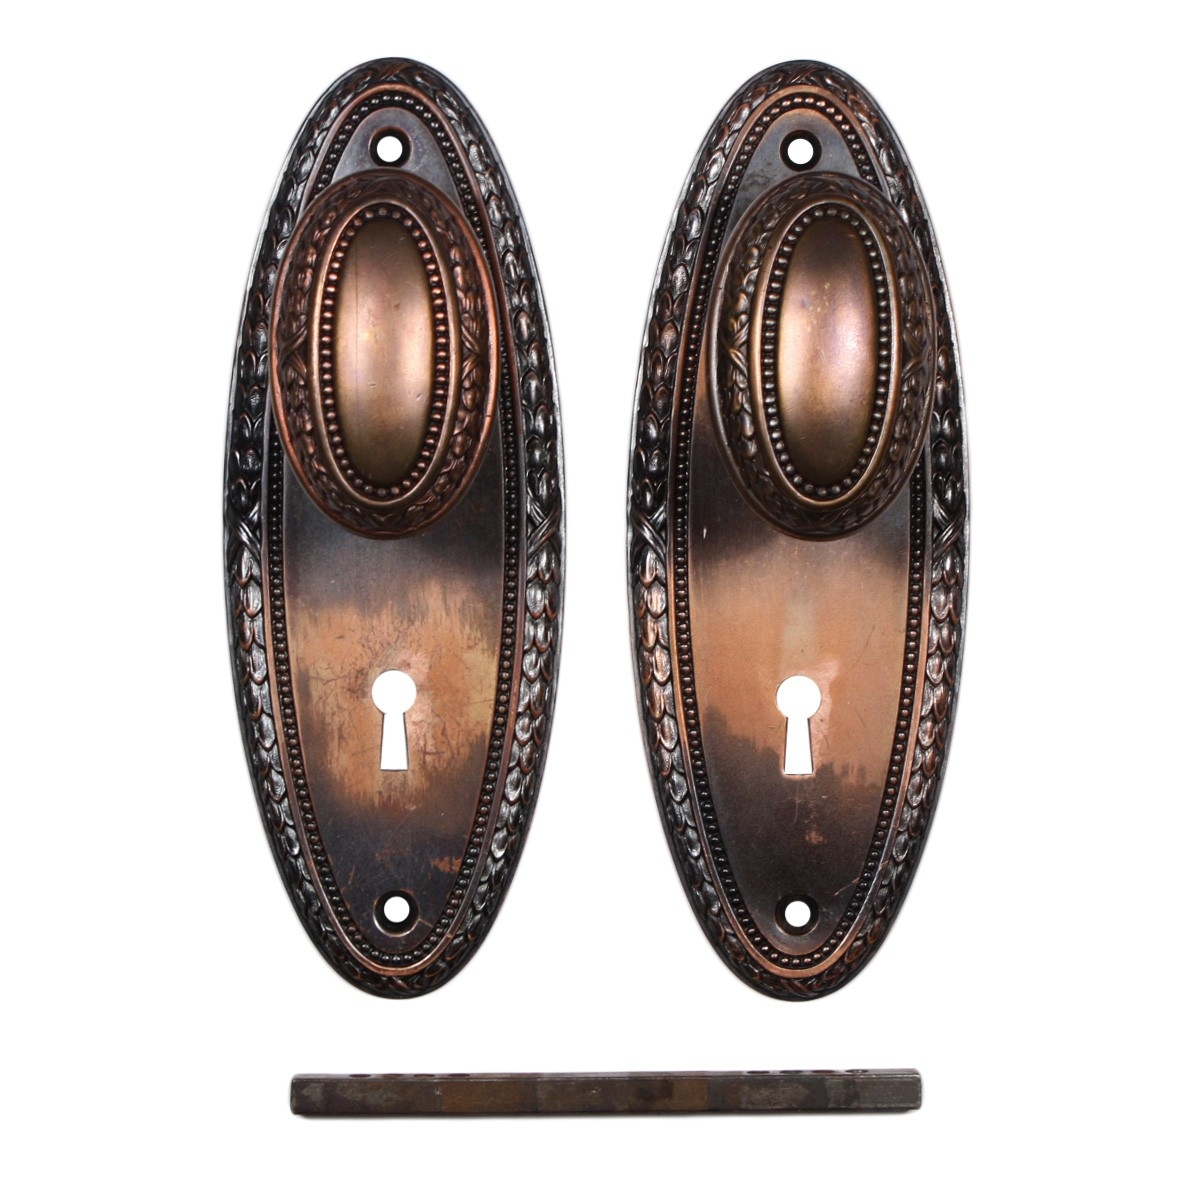 Oval Door Knob Sets